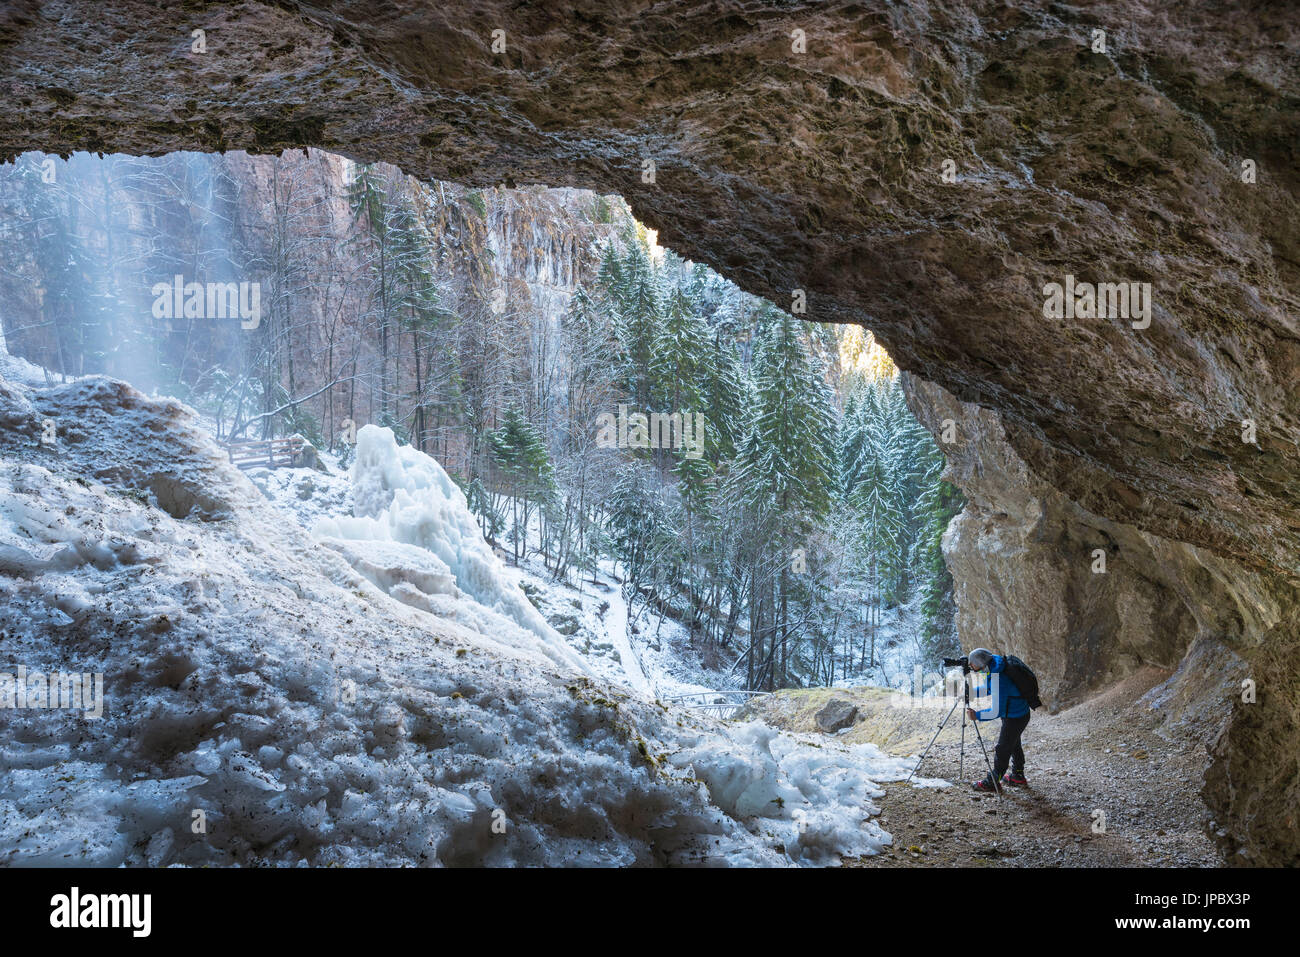 frozen waterfall in the cave Europe, Italy, Trentino Alto Adige region, Trento district, Non valley, Tret city - Stock Image